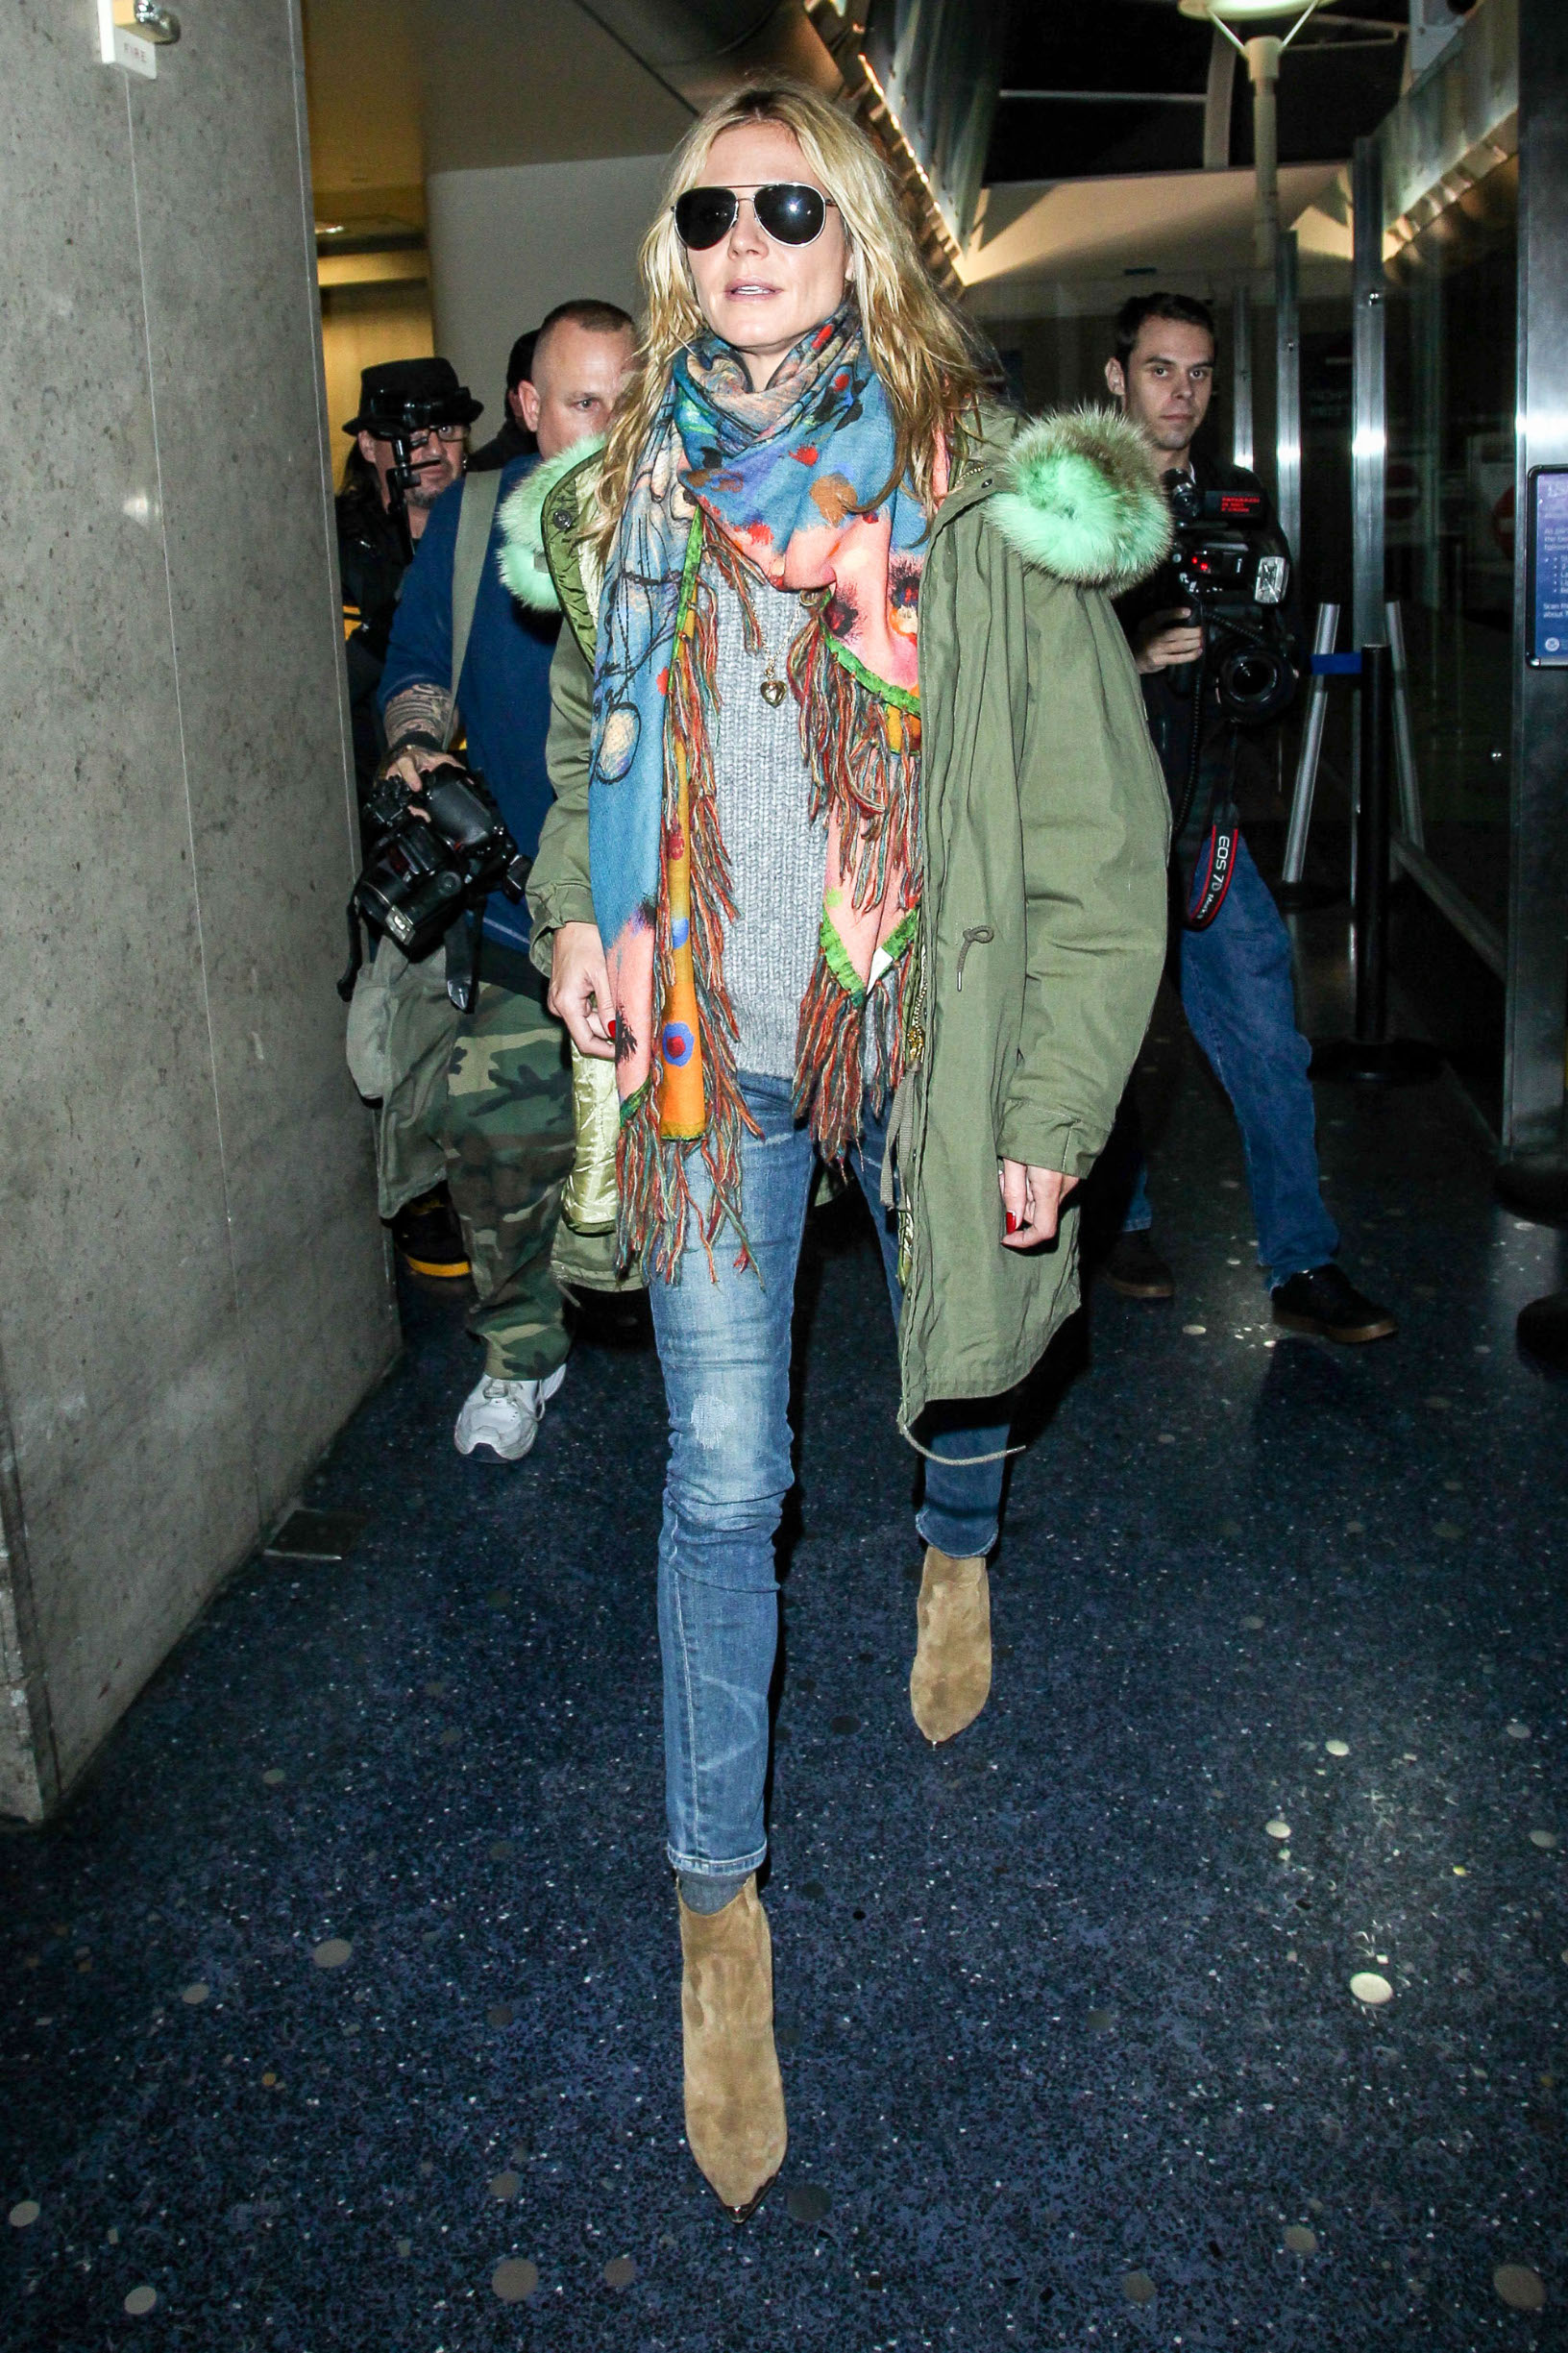 December 14, 2014: Heidi Klum Goes Casual Chic in Military Green Parka & High Heeled Boots As She Jets into LAX airport in Los Angeles, California.,Image: 213229939, License: Rights-managed, Restrictions: CODE000, Model Release: no, Credit line: INFphoto.com / INSTAR Images / Profimedia